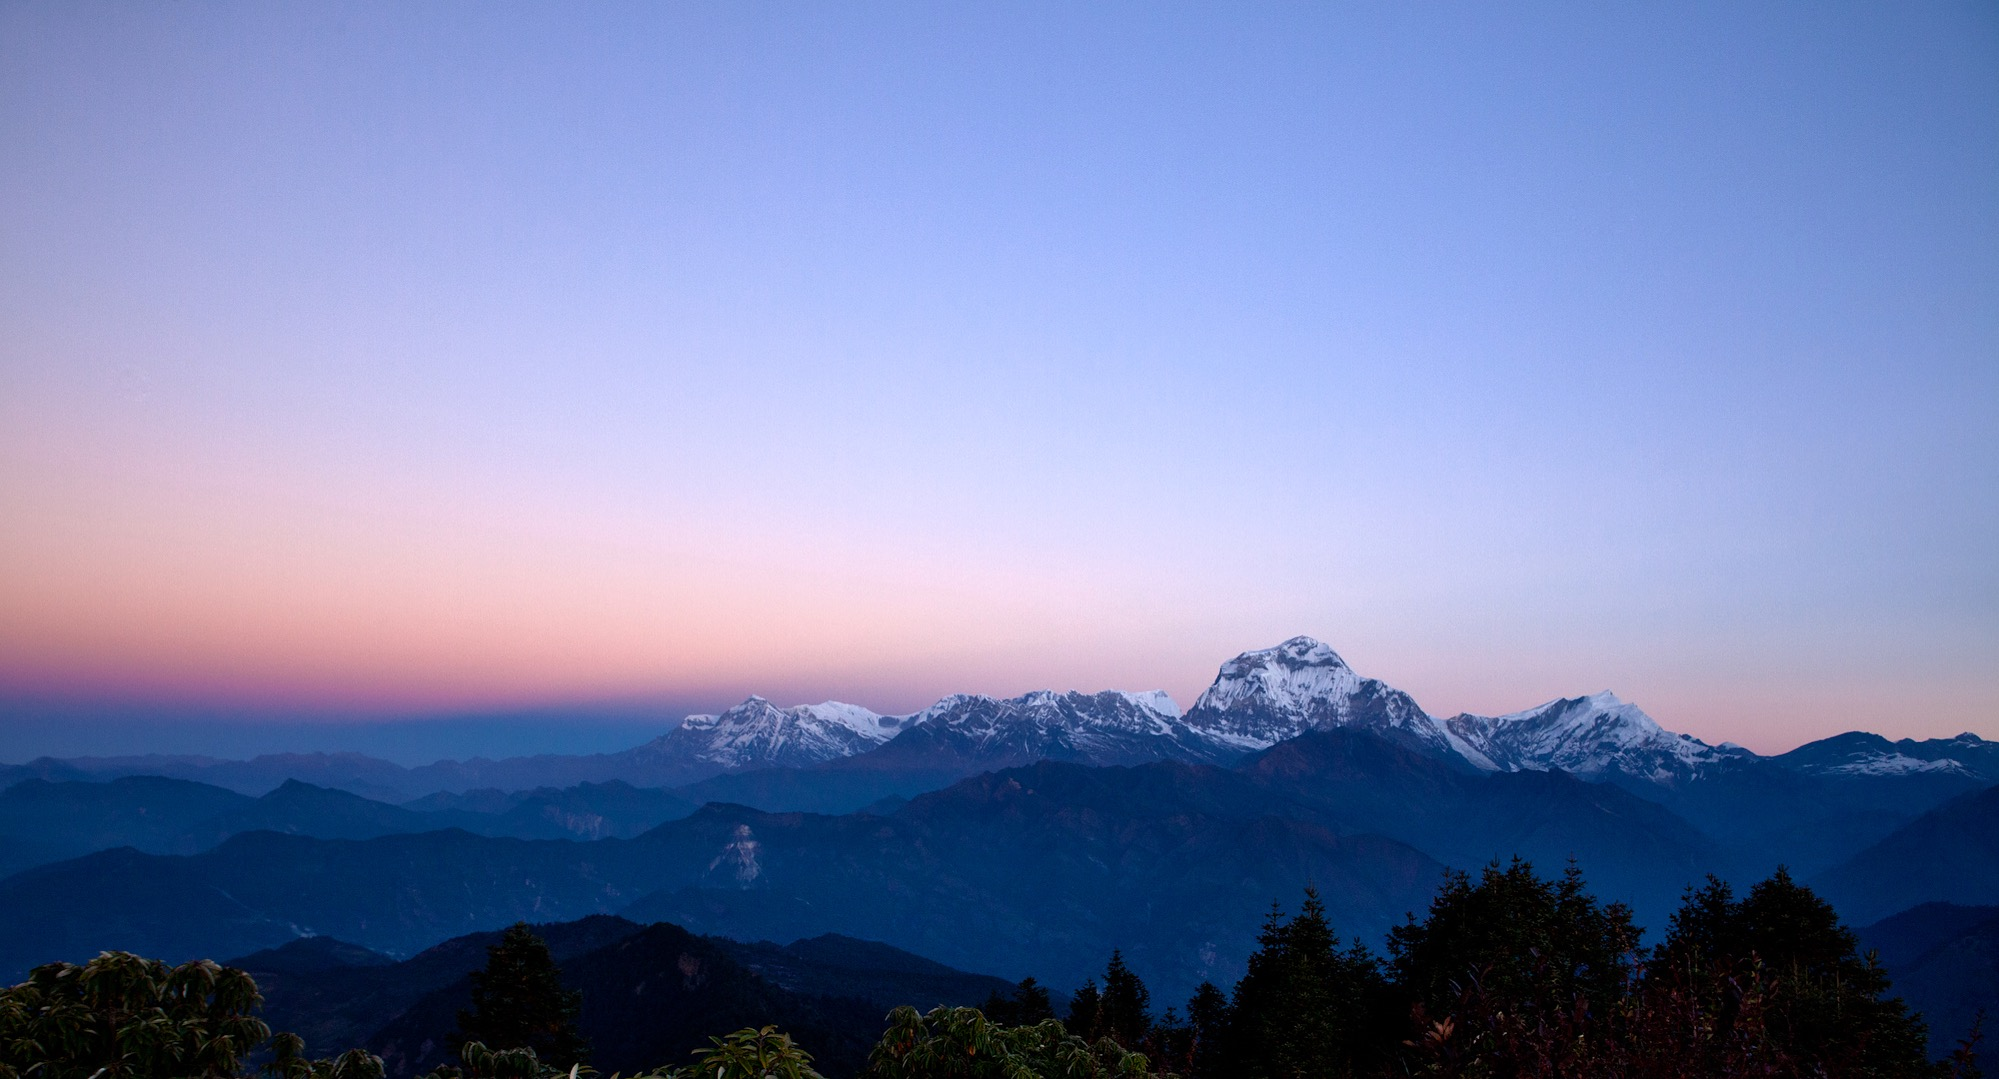 Nov 9.1, 2016   An hour skywards landed boots at Poon Hill, a panoramic glimpse of the southeastern Himalaya. Dhaulagiri is the most prominent from this view with one of the largest mountain faces on the planet. Over it's 8,167 metre peak is the Tibetan Plateau—the Roof of the World—a sweeping flat land mass the size of Alaska and Texas combined.